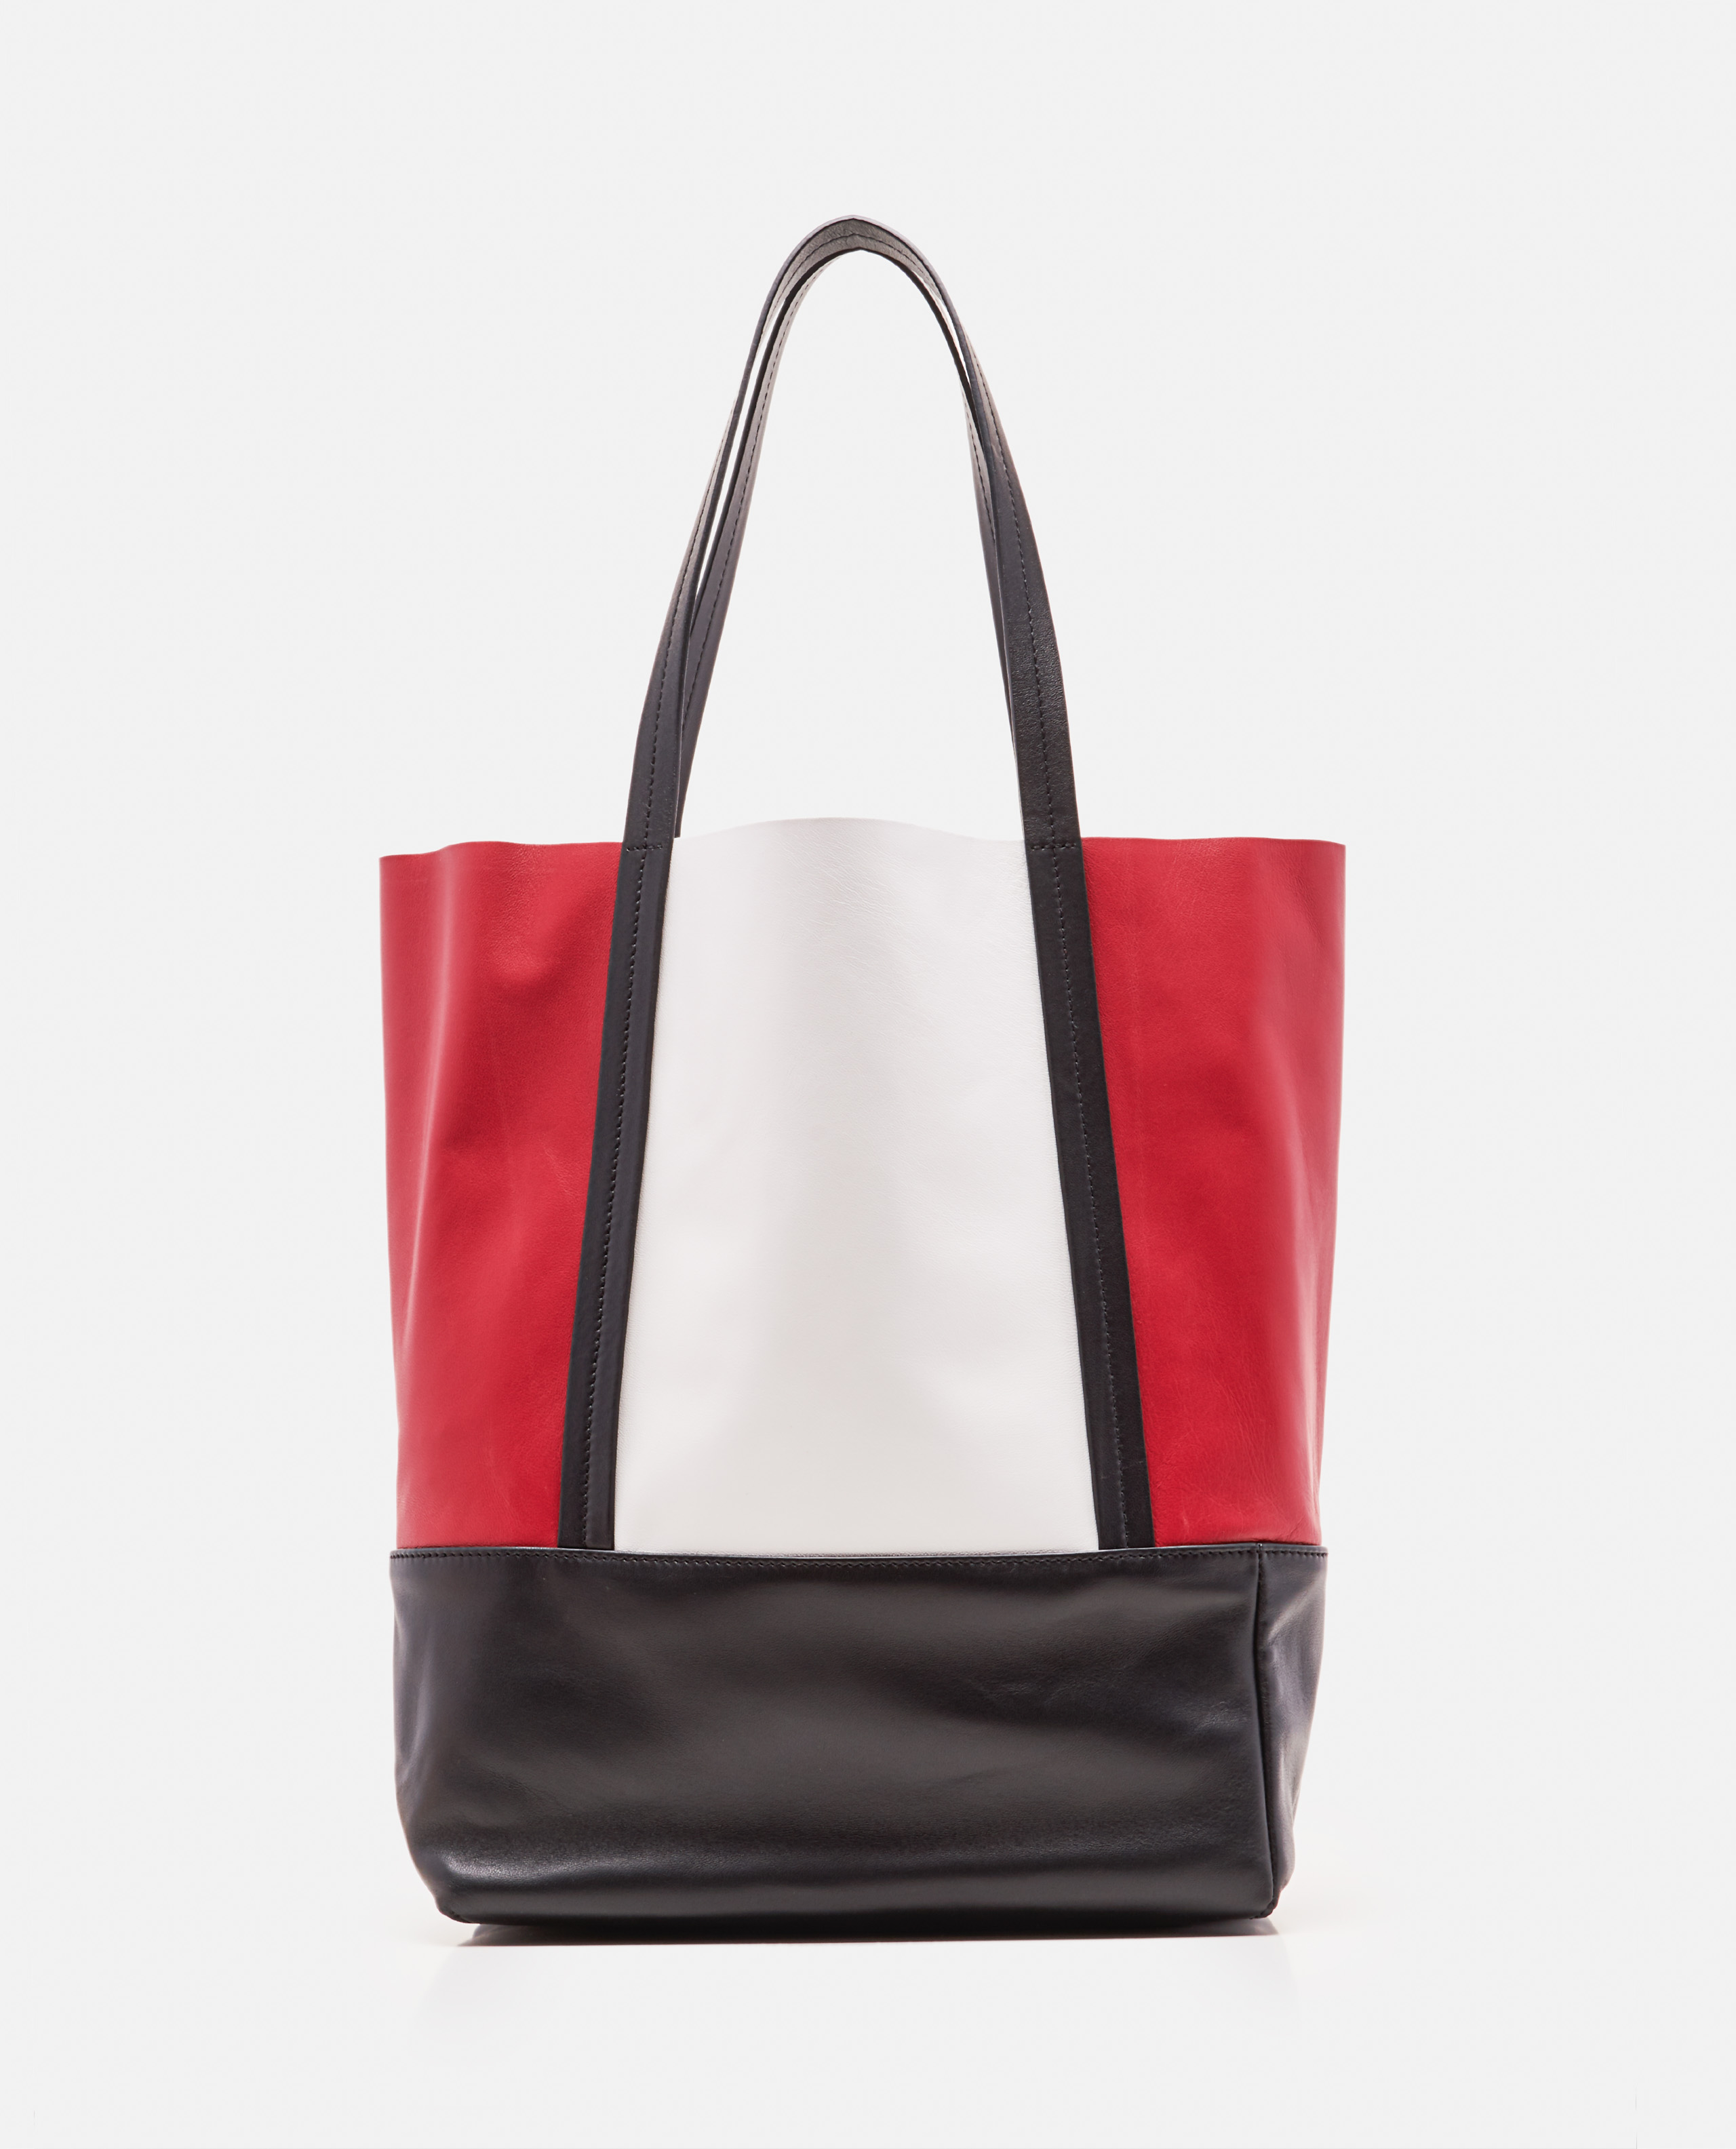 Two-tone leather tote bag